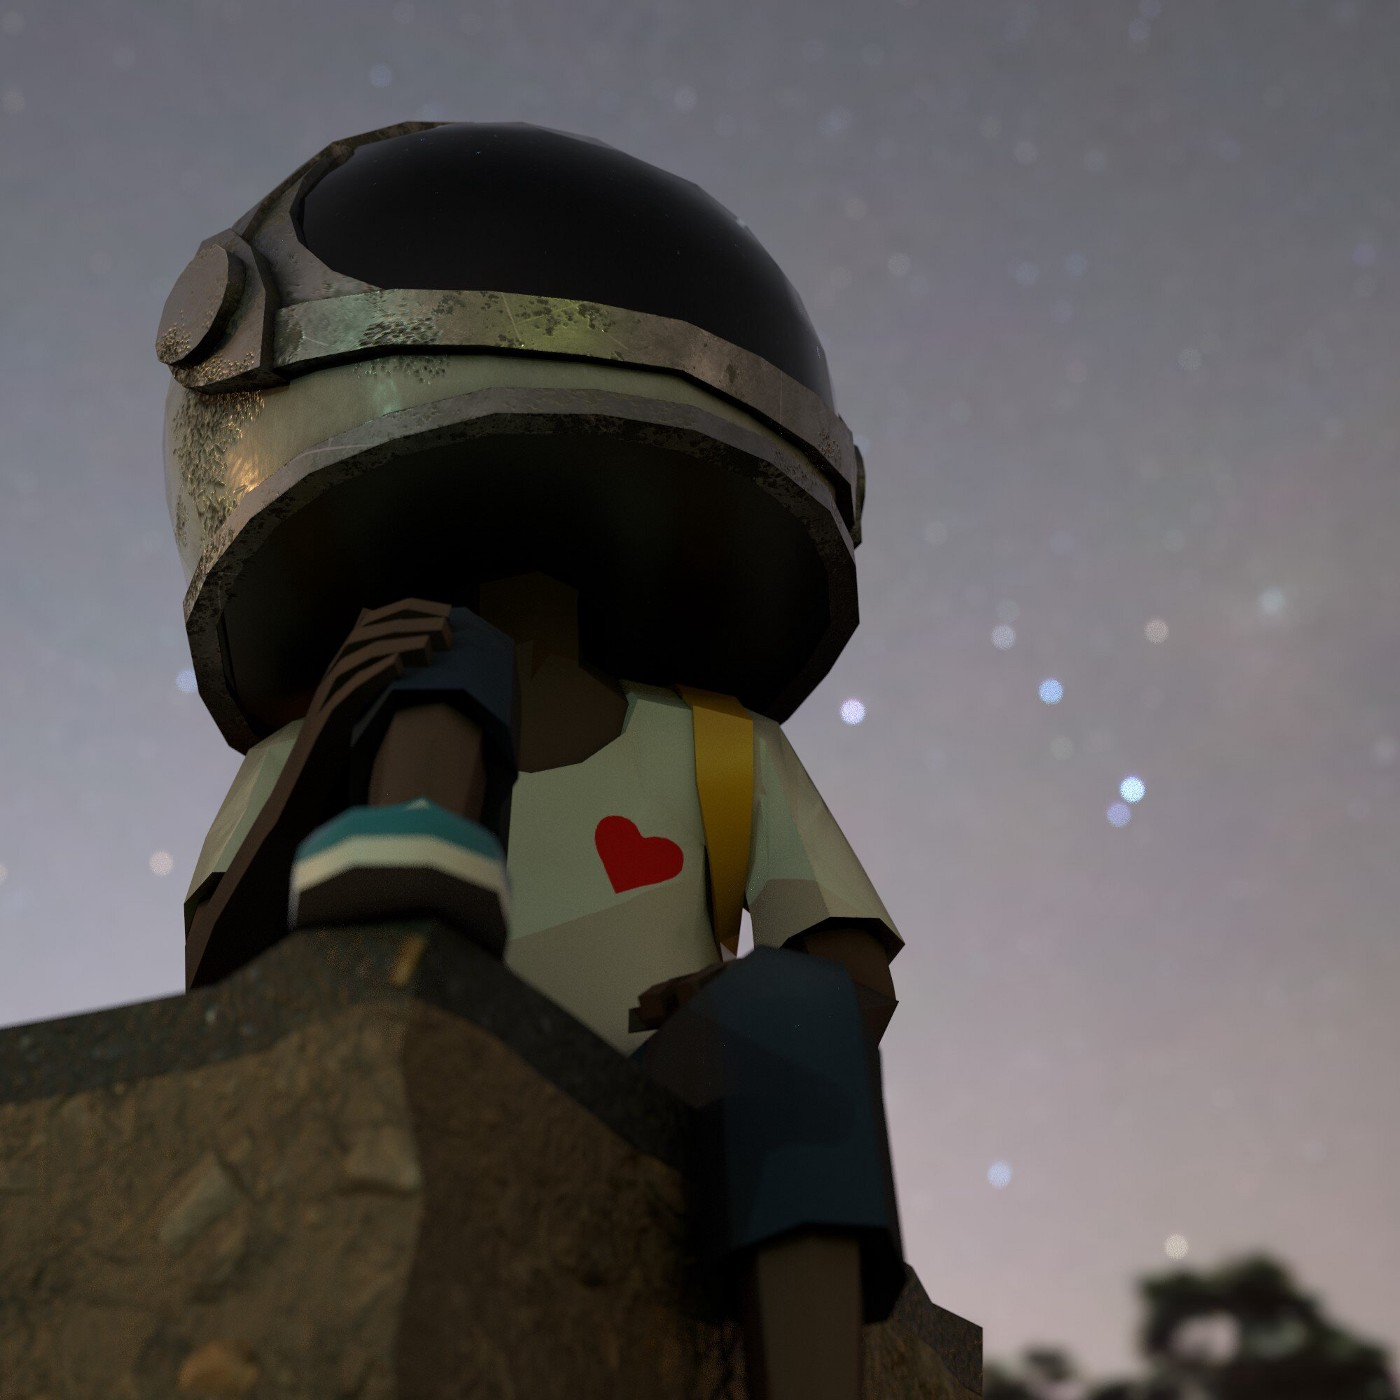 Aku, the fictional character based on Micah Johnson's young nephew, staring up at the stars